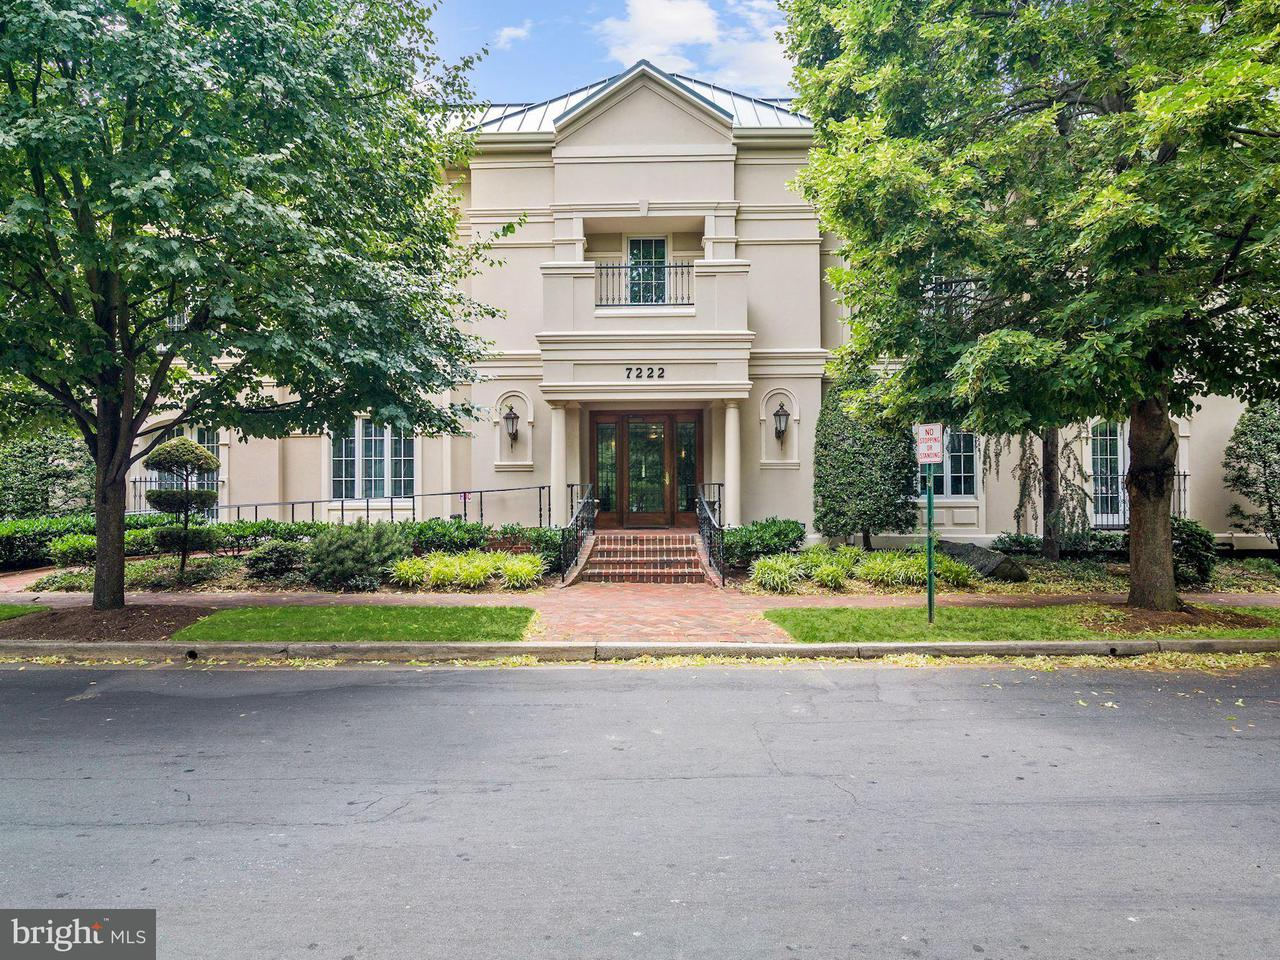 Townhouse for Sale at 7222 47TH ST #R-2 7222 47TH ST #R-2 Chevy Chase, Maryland 20815 United States